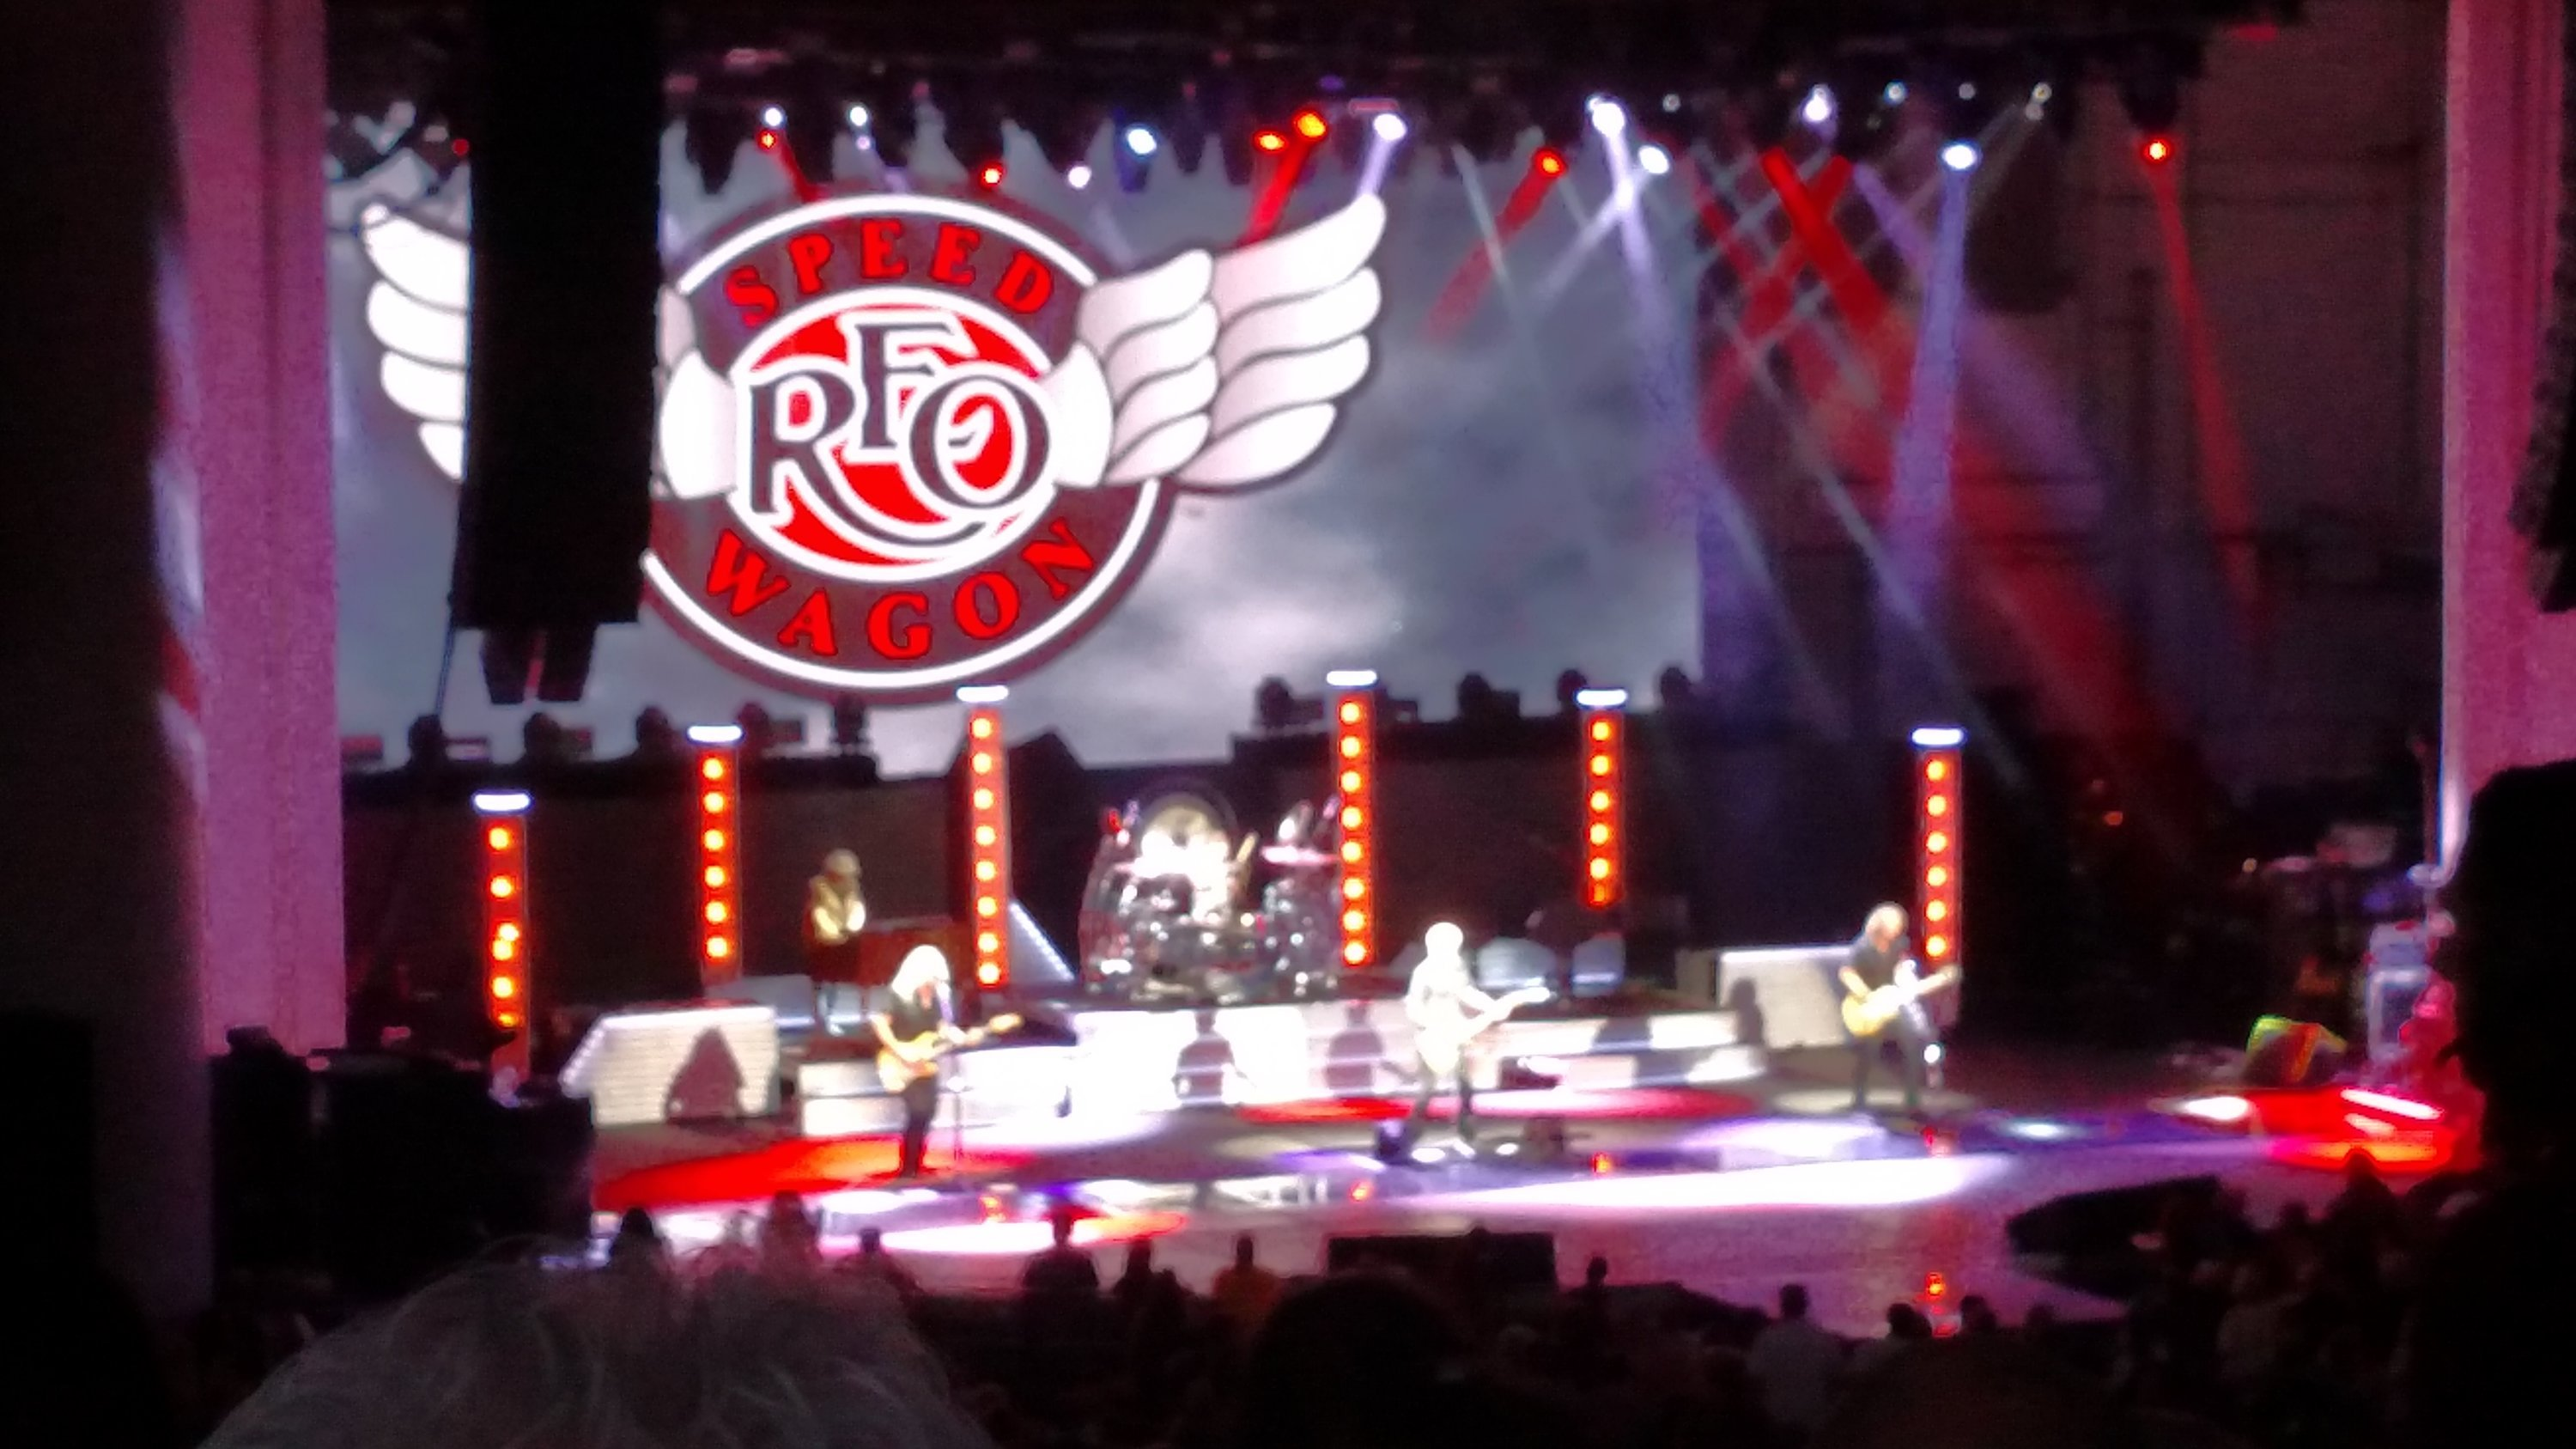 Timothy Attended Def Leppard, Reo Speedwagon, Tesla Live In Concert   Pnc  Bank Arts